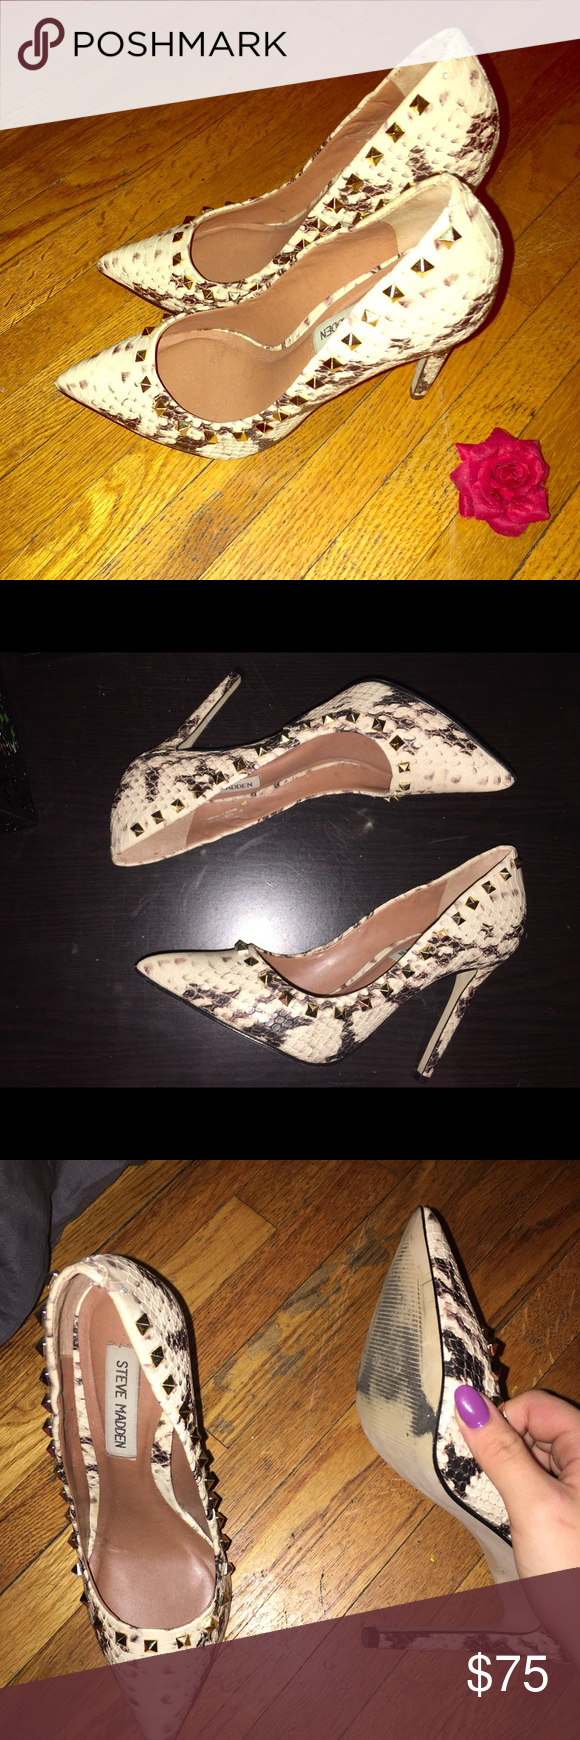 Steve Madden Snake Skin Rockstud Pumps These are a pair of fierce Steve Madden pumps with gold rockstuds, sort of Valentino inspired. These go great with jeans or dresses. Although the bottom sole looks very worn, if you look inside the shoe where it says Steve Madden, it's very clean and looks like they haven't been worn.  Open to all questions and offers Steve Madden Shoes Heels